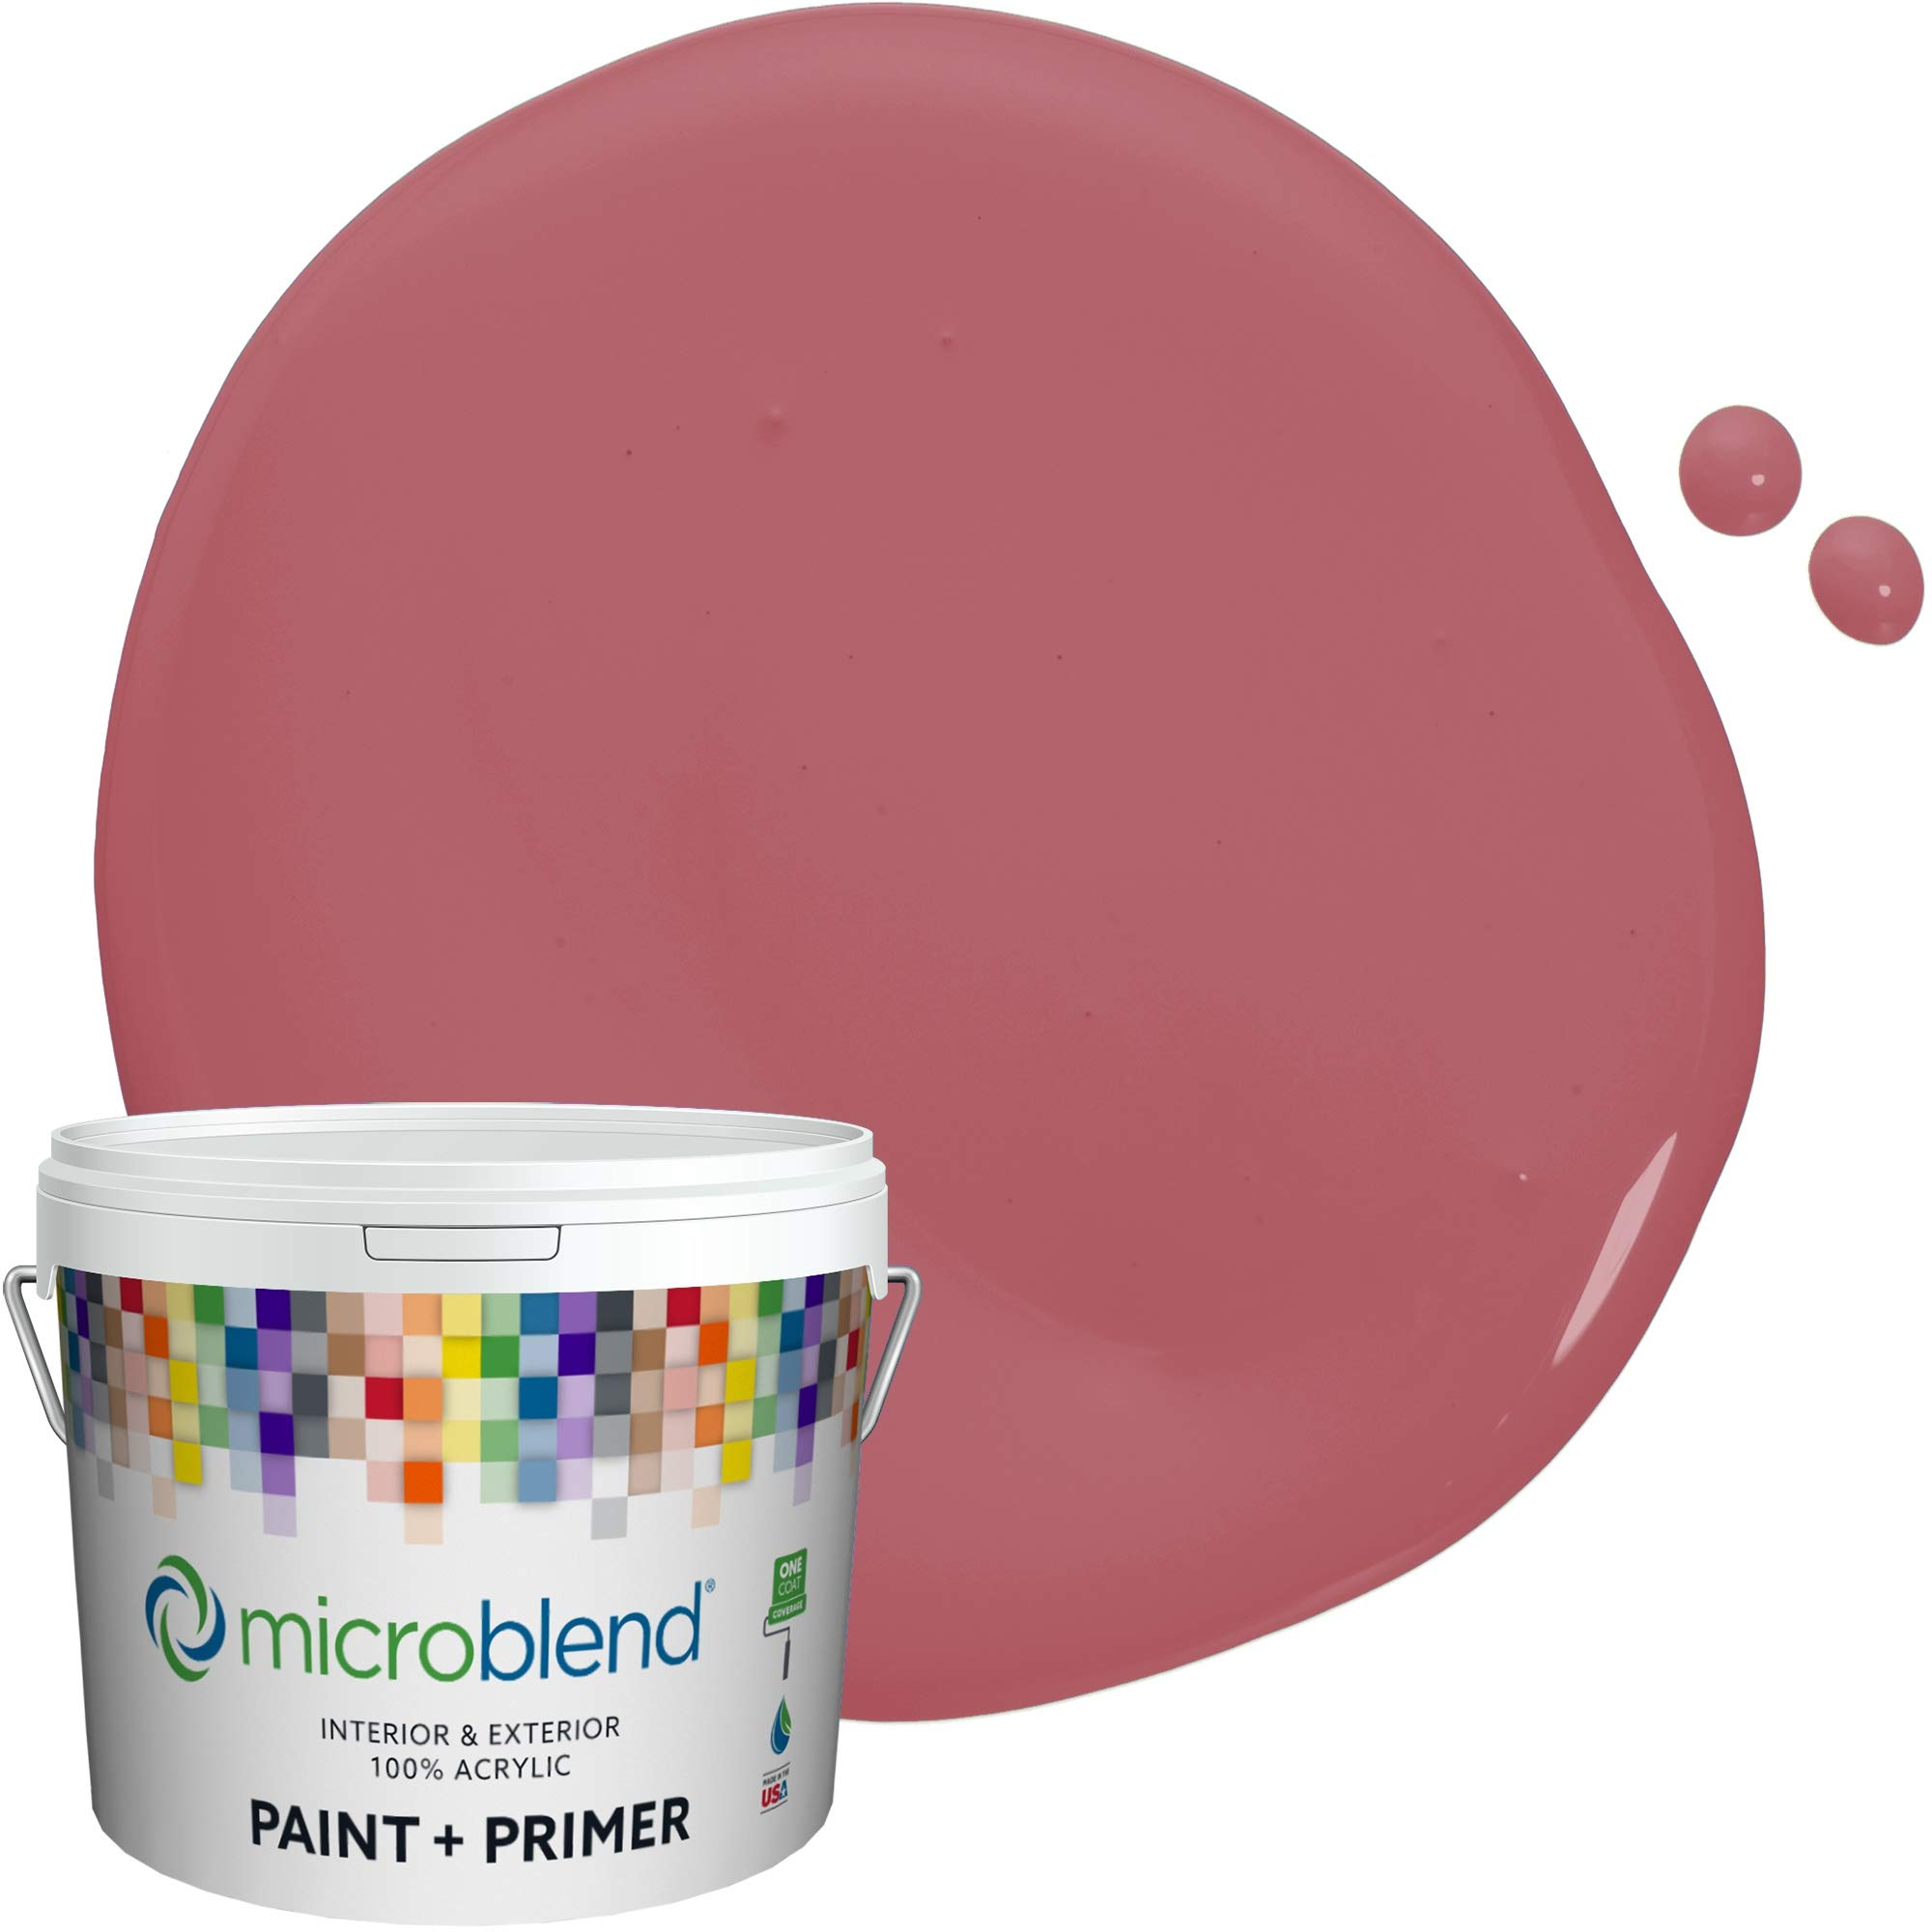 MicroBlend Interior Paint + Primer, Royal Raquel, Semi-Gloss Sheen, 1 Gallon, Custom Made, Premium Quality One Coat Hide & Washable Paint (73243-2-M1188B5)